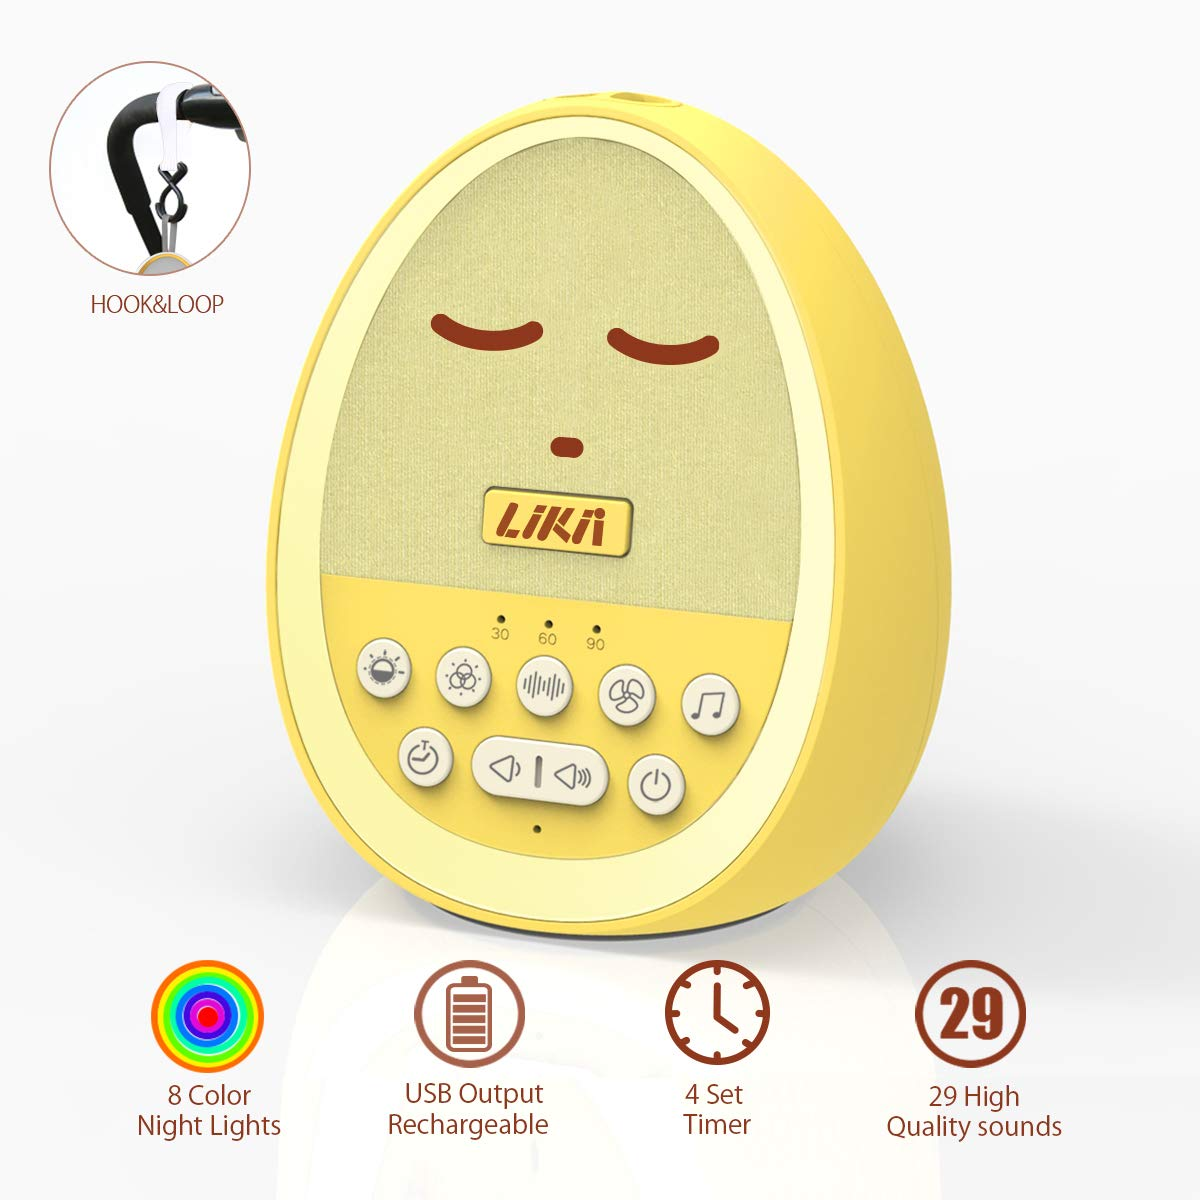 White Noise Machine, Sound Machine for Baby Sleeping, Portable Rechargeable Sound Machine, 29 Sounds with 8 Colour Nightlight, Compact and Cute Yellow Egg Shape for Baby, Kid, Infant by LIKII